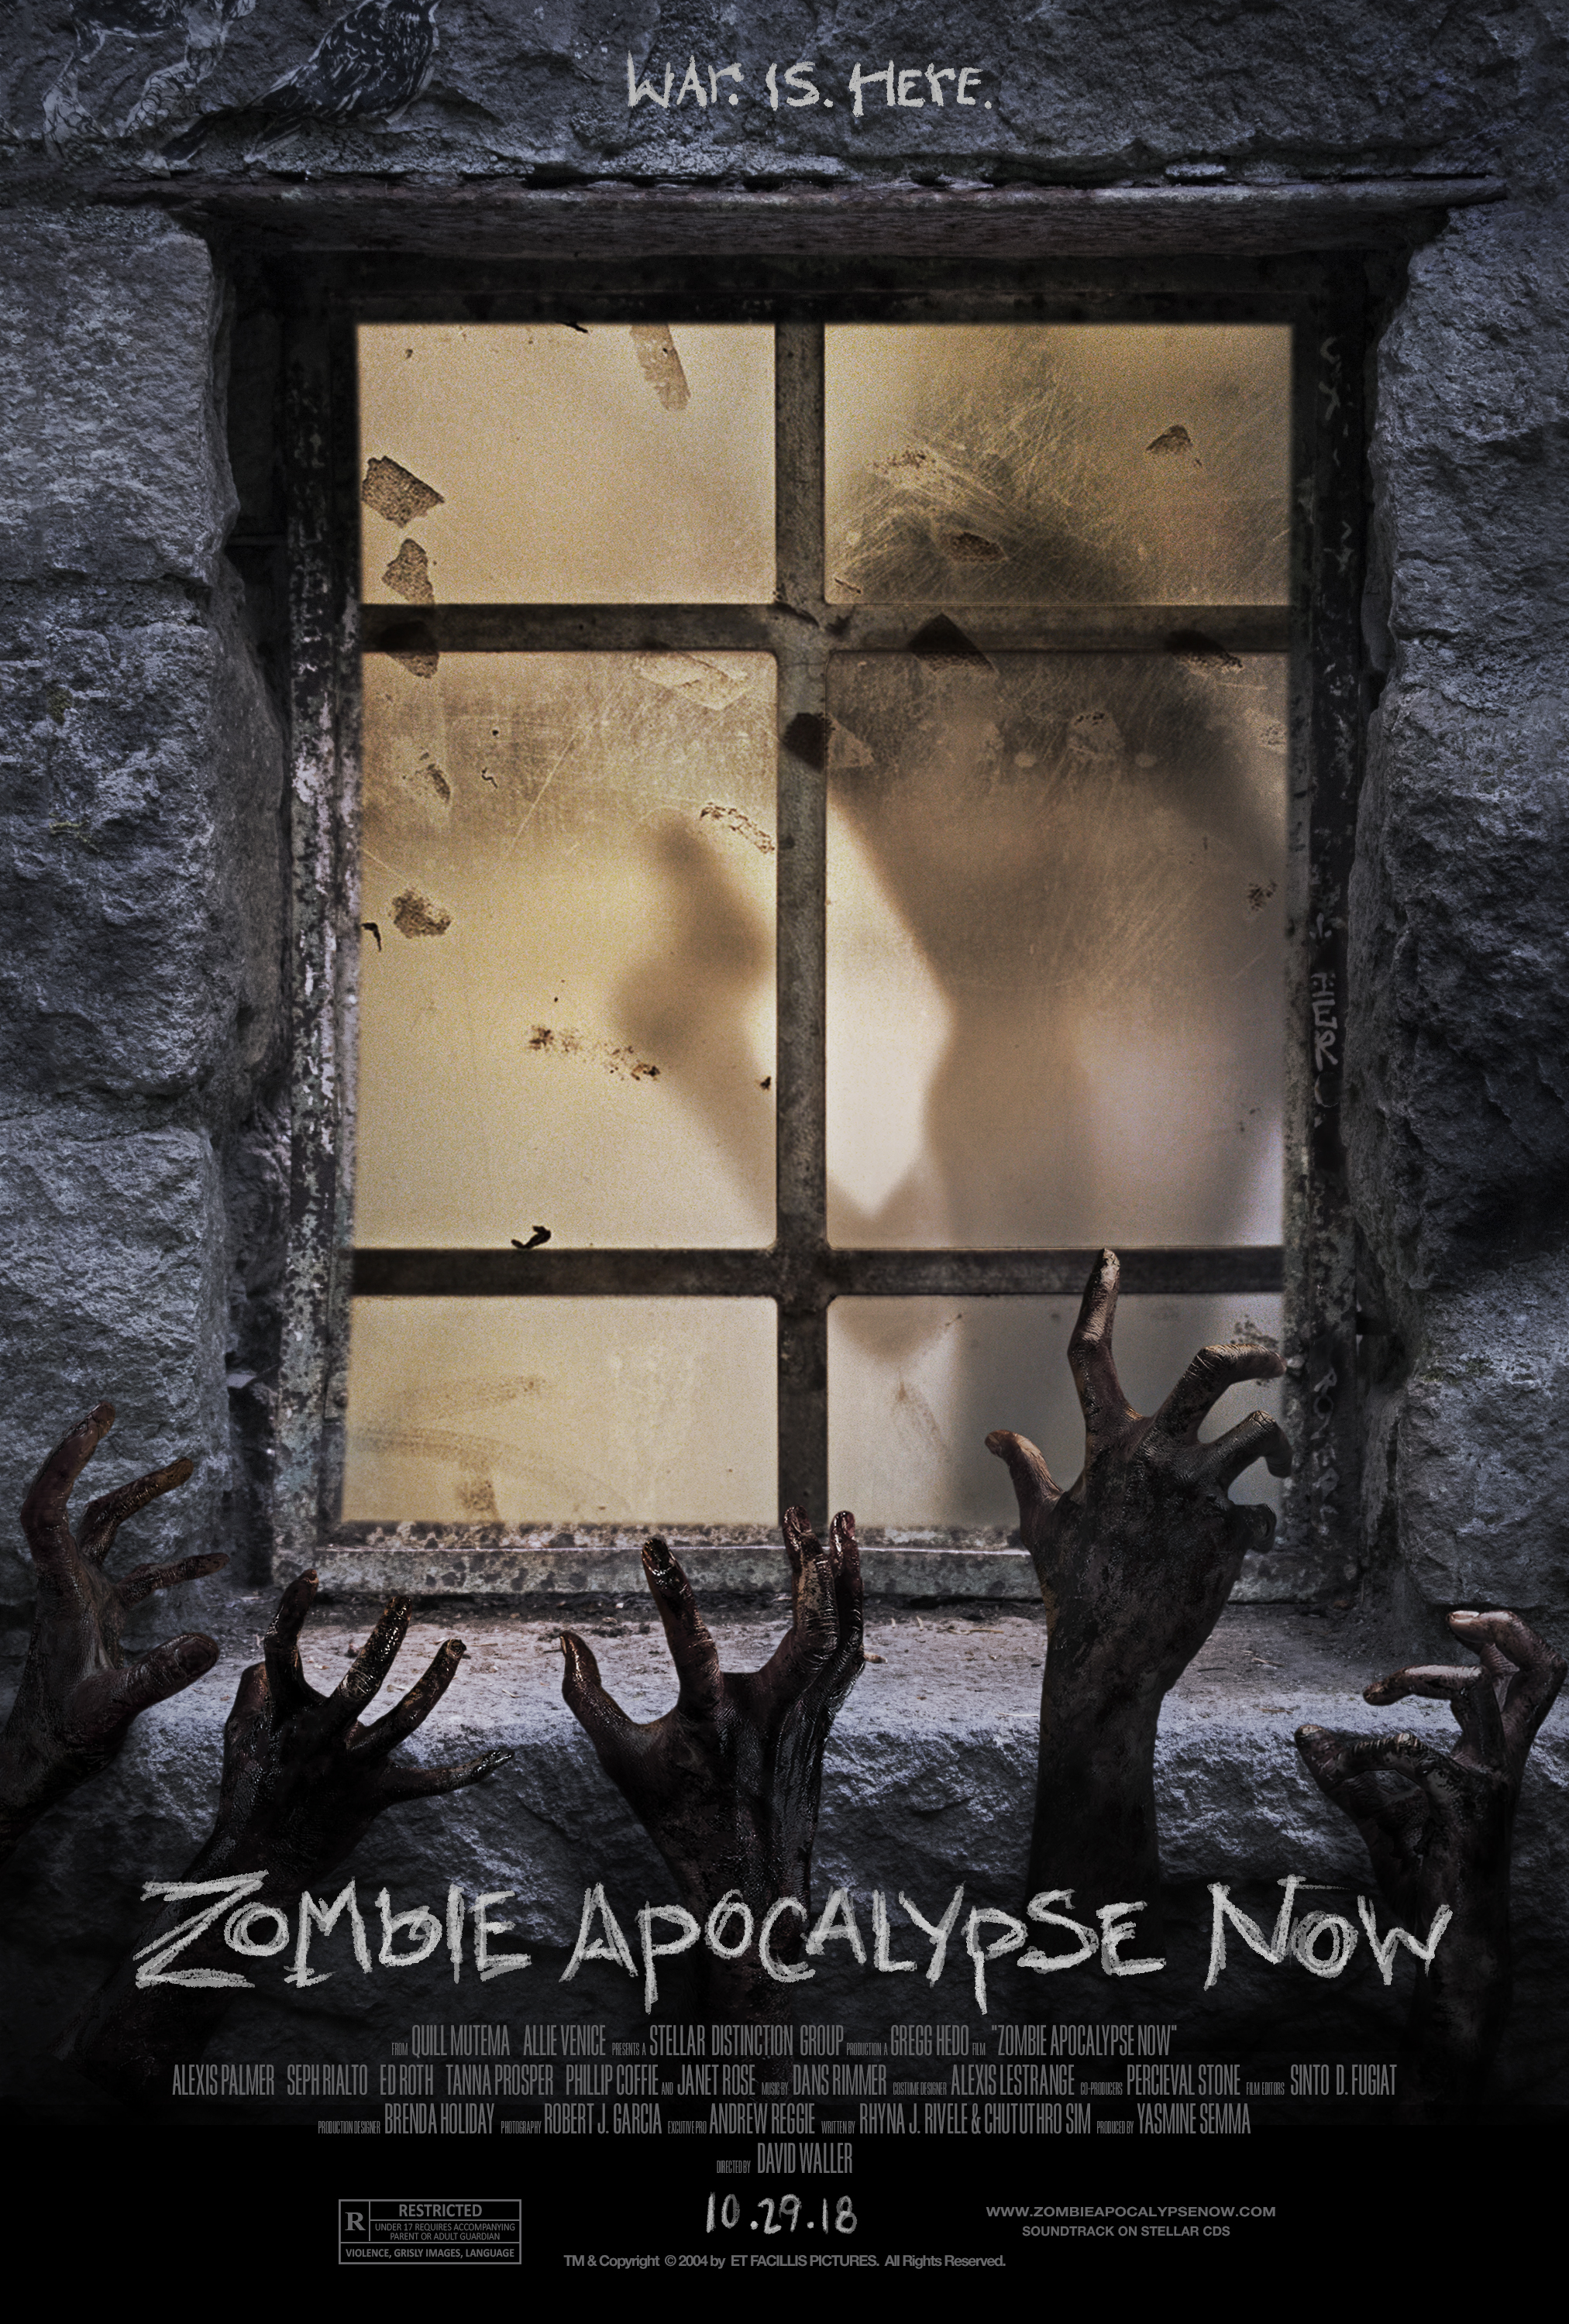 """""""Zombie Apocalypse Now"""" (Style 3)  3 of 3 variant movie posters September 2018"""